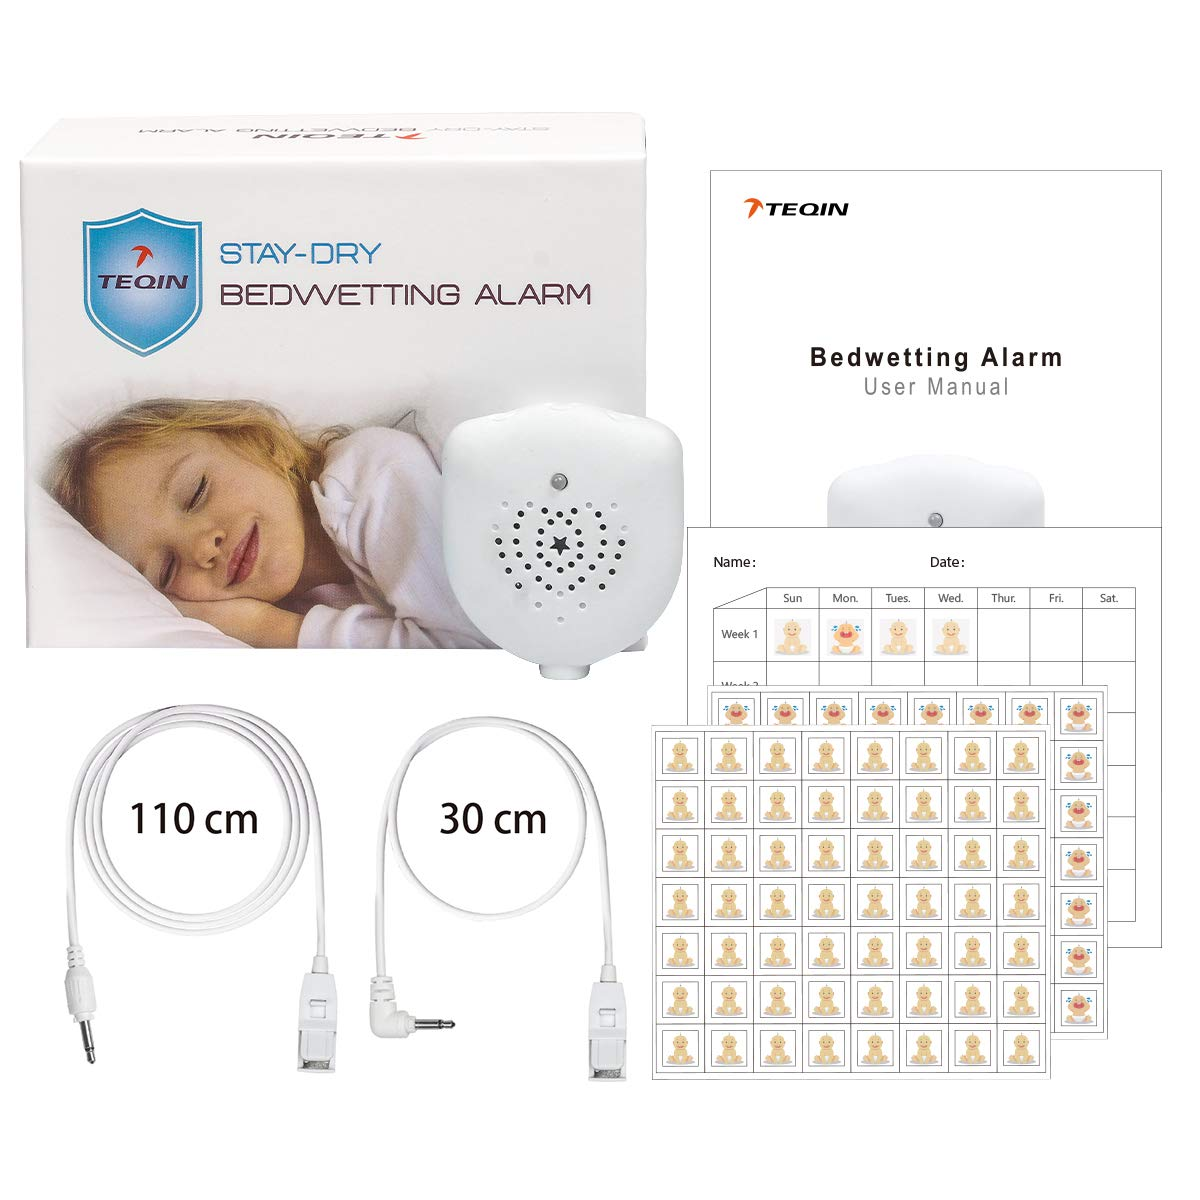 TEQIN Bedwetting Rechargeable Selectable Vibration